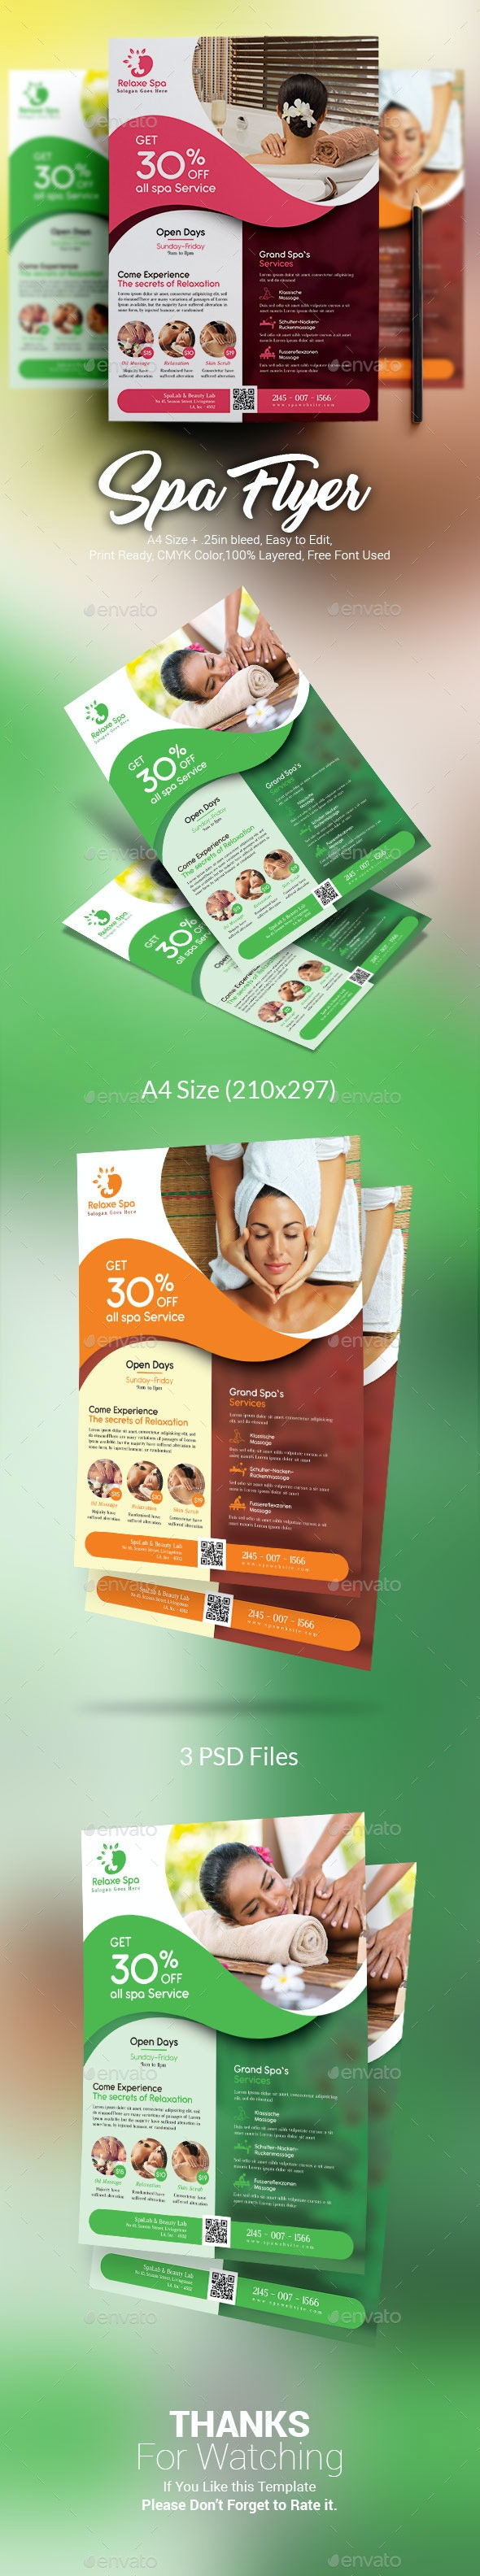 Massage Flyer Template Free from graphicriver.img.customer.envatousercontent.com